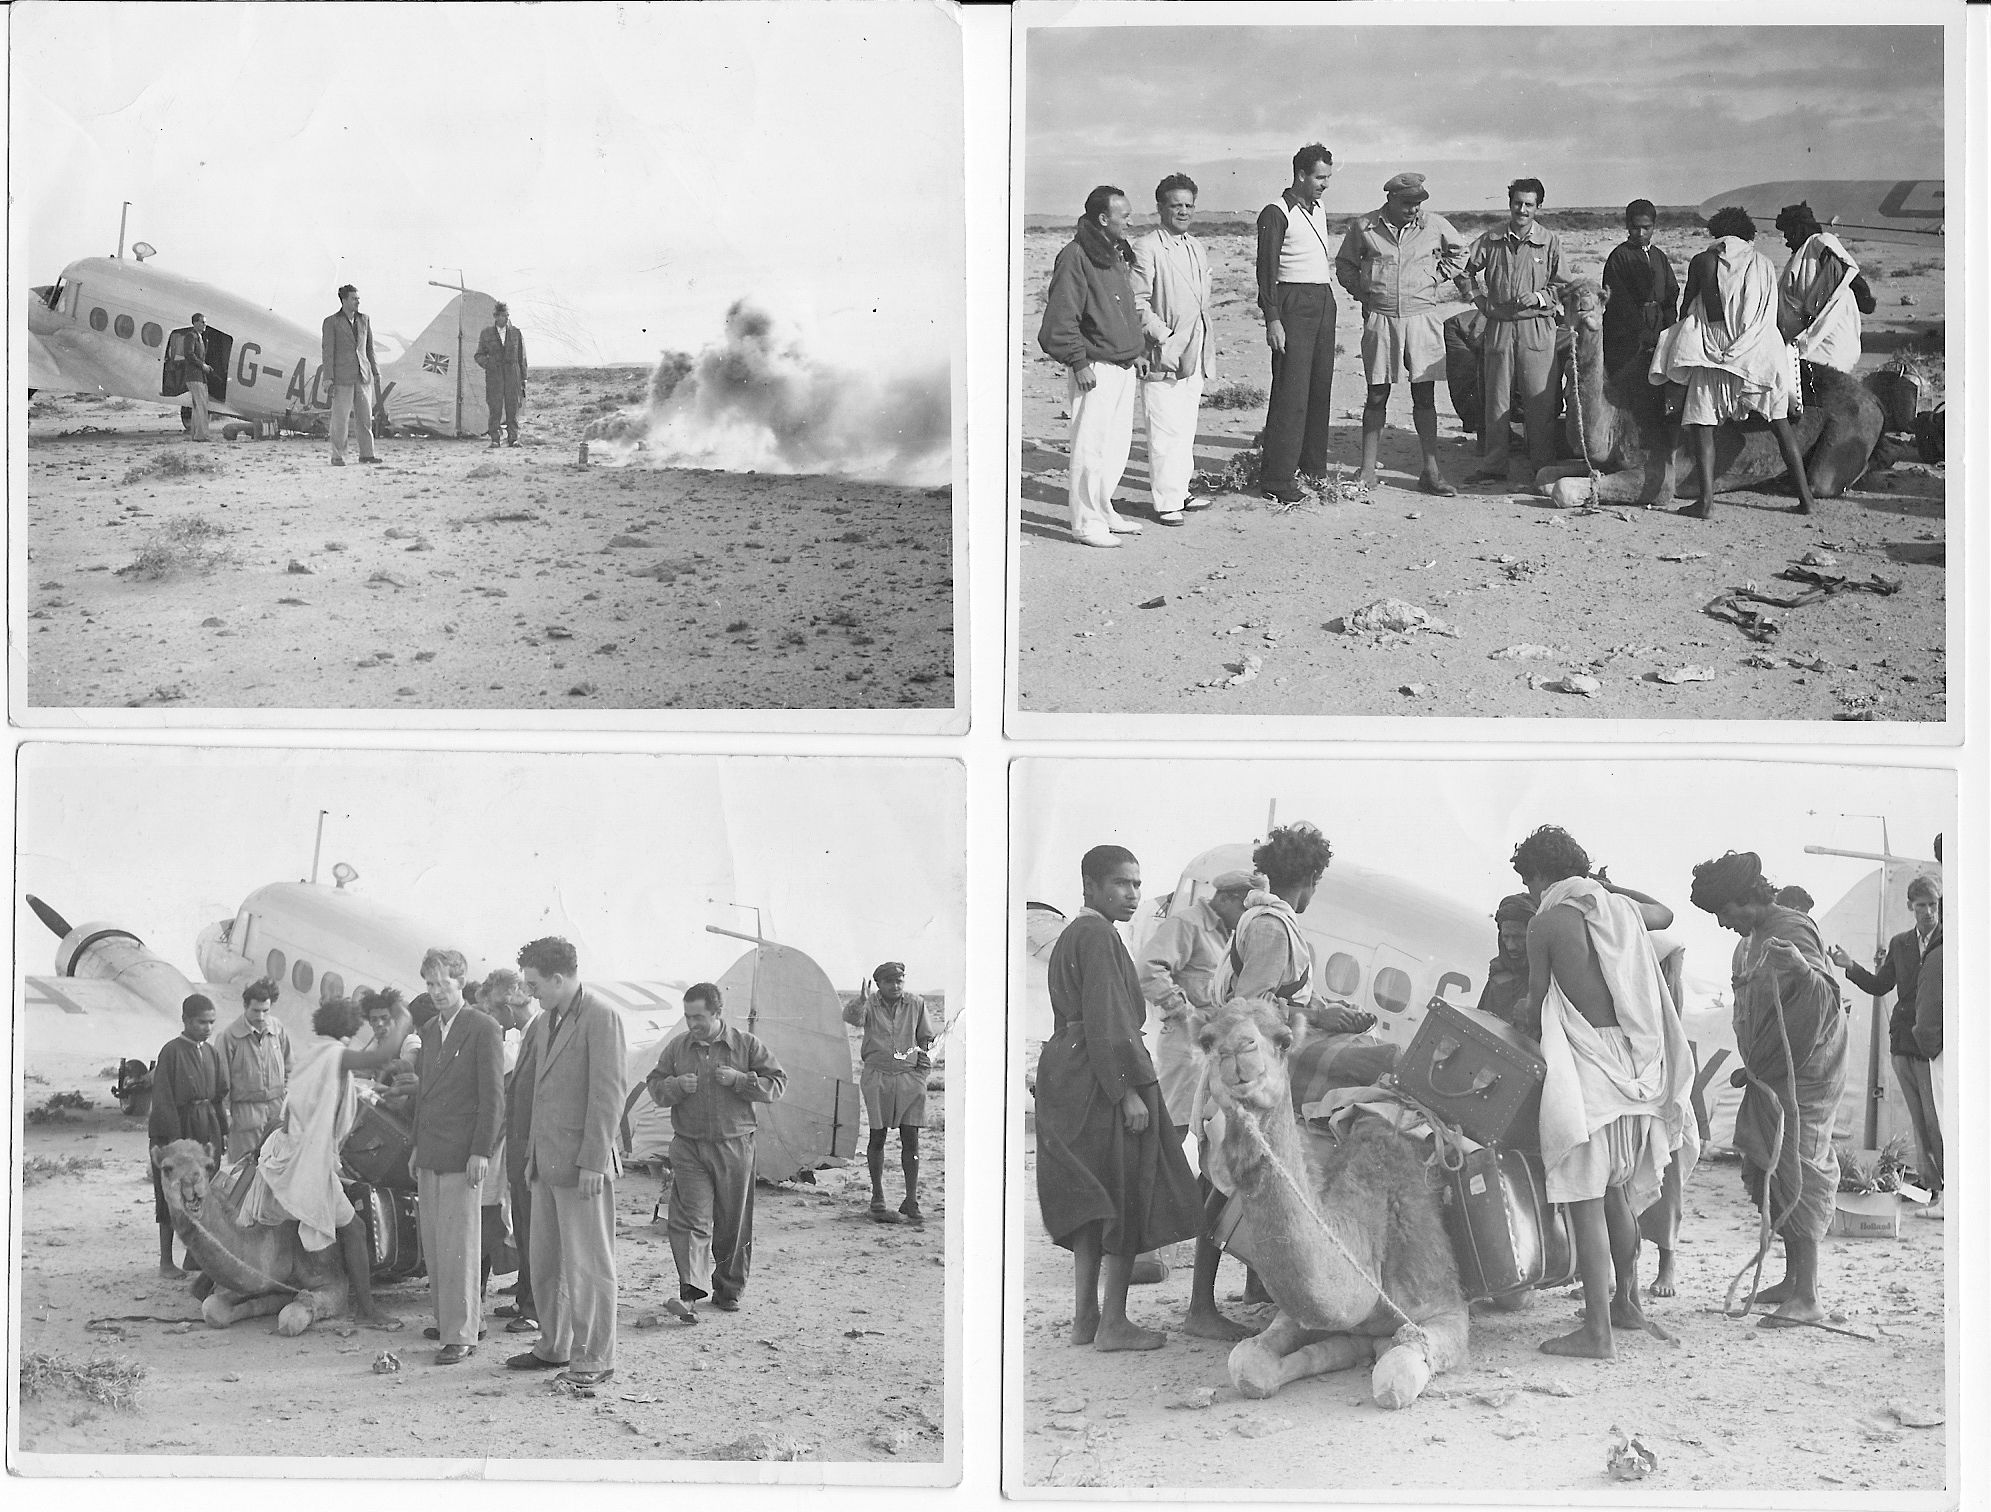 This is the second half of the story of the Avro Anson that landed badly in the desert, with a single camel to take the strain.  No date or loction again, but it doesn't look as if it's very warm.  Perhaps the clothes of the locals might give someone a clue to where it is?